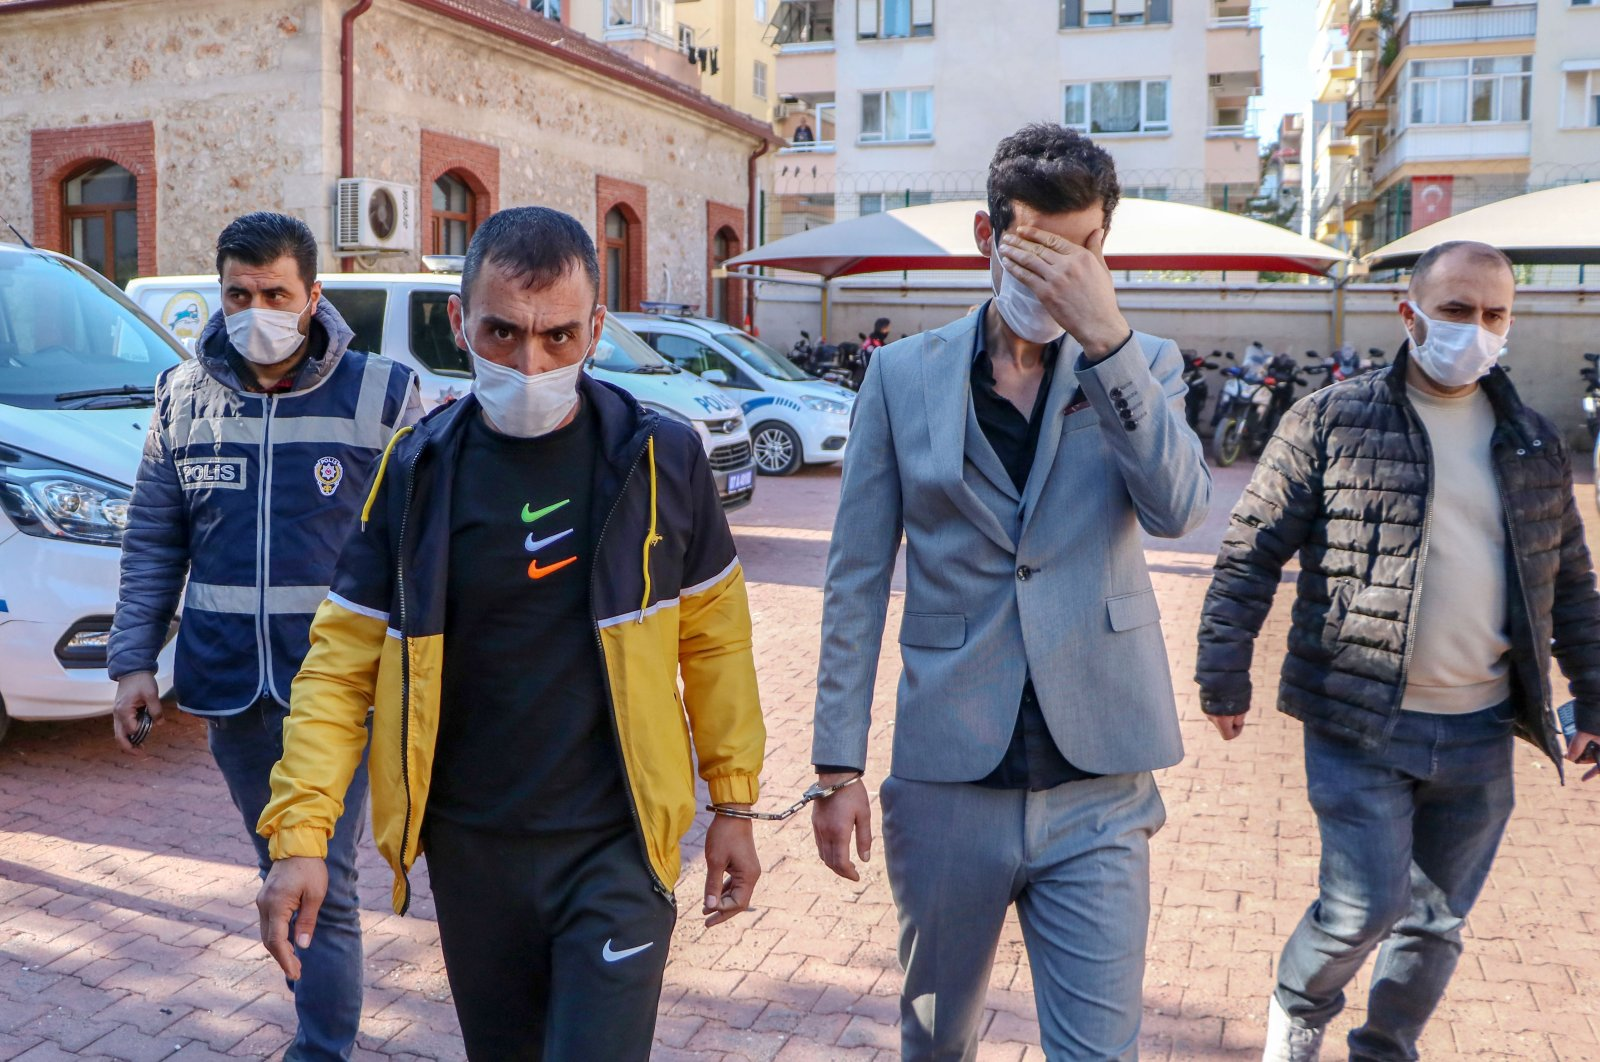 The bridegroom F.A. (L) and his accomplice O.G. head to a police station in the company of officers, in Antalya, southern Turkey, Nov. 29, 2020. (DHA Photo)